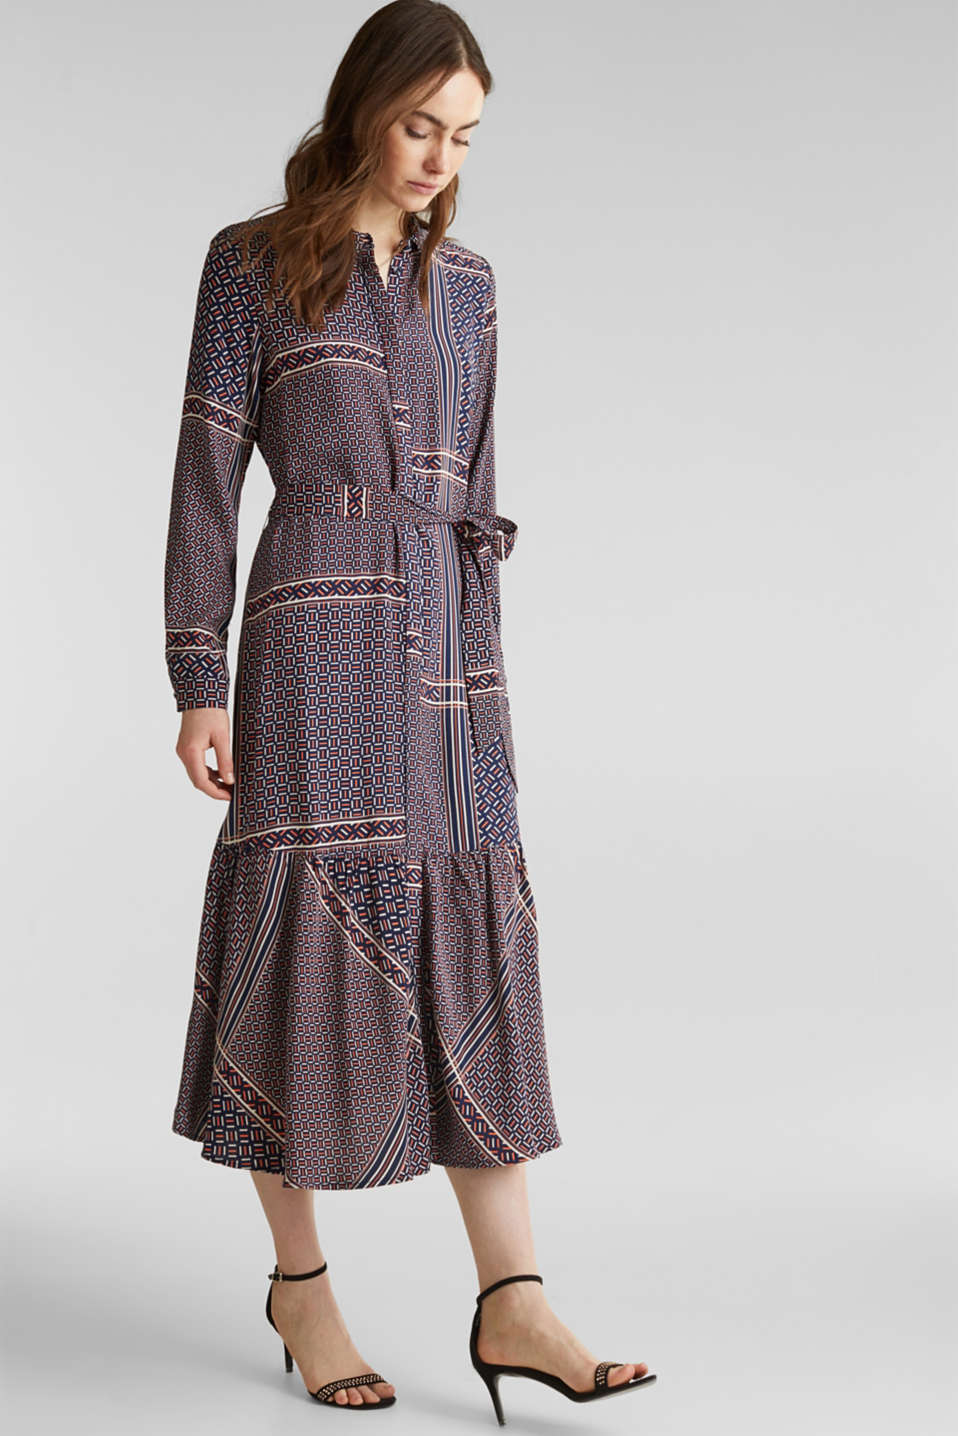 Midi dress with a modern tribal print, NAVY, detail image number 1